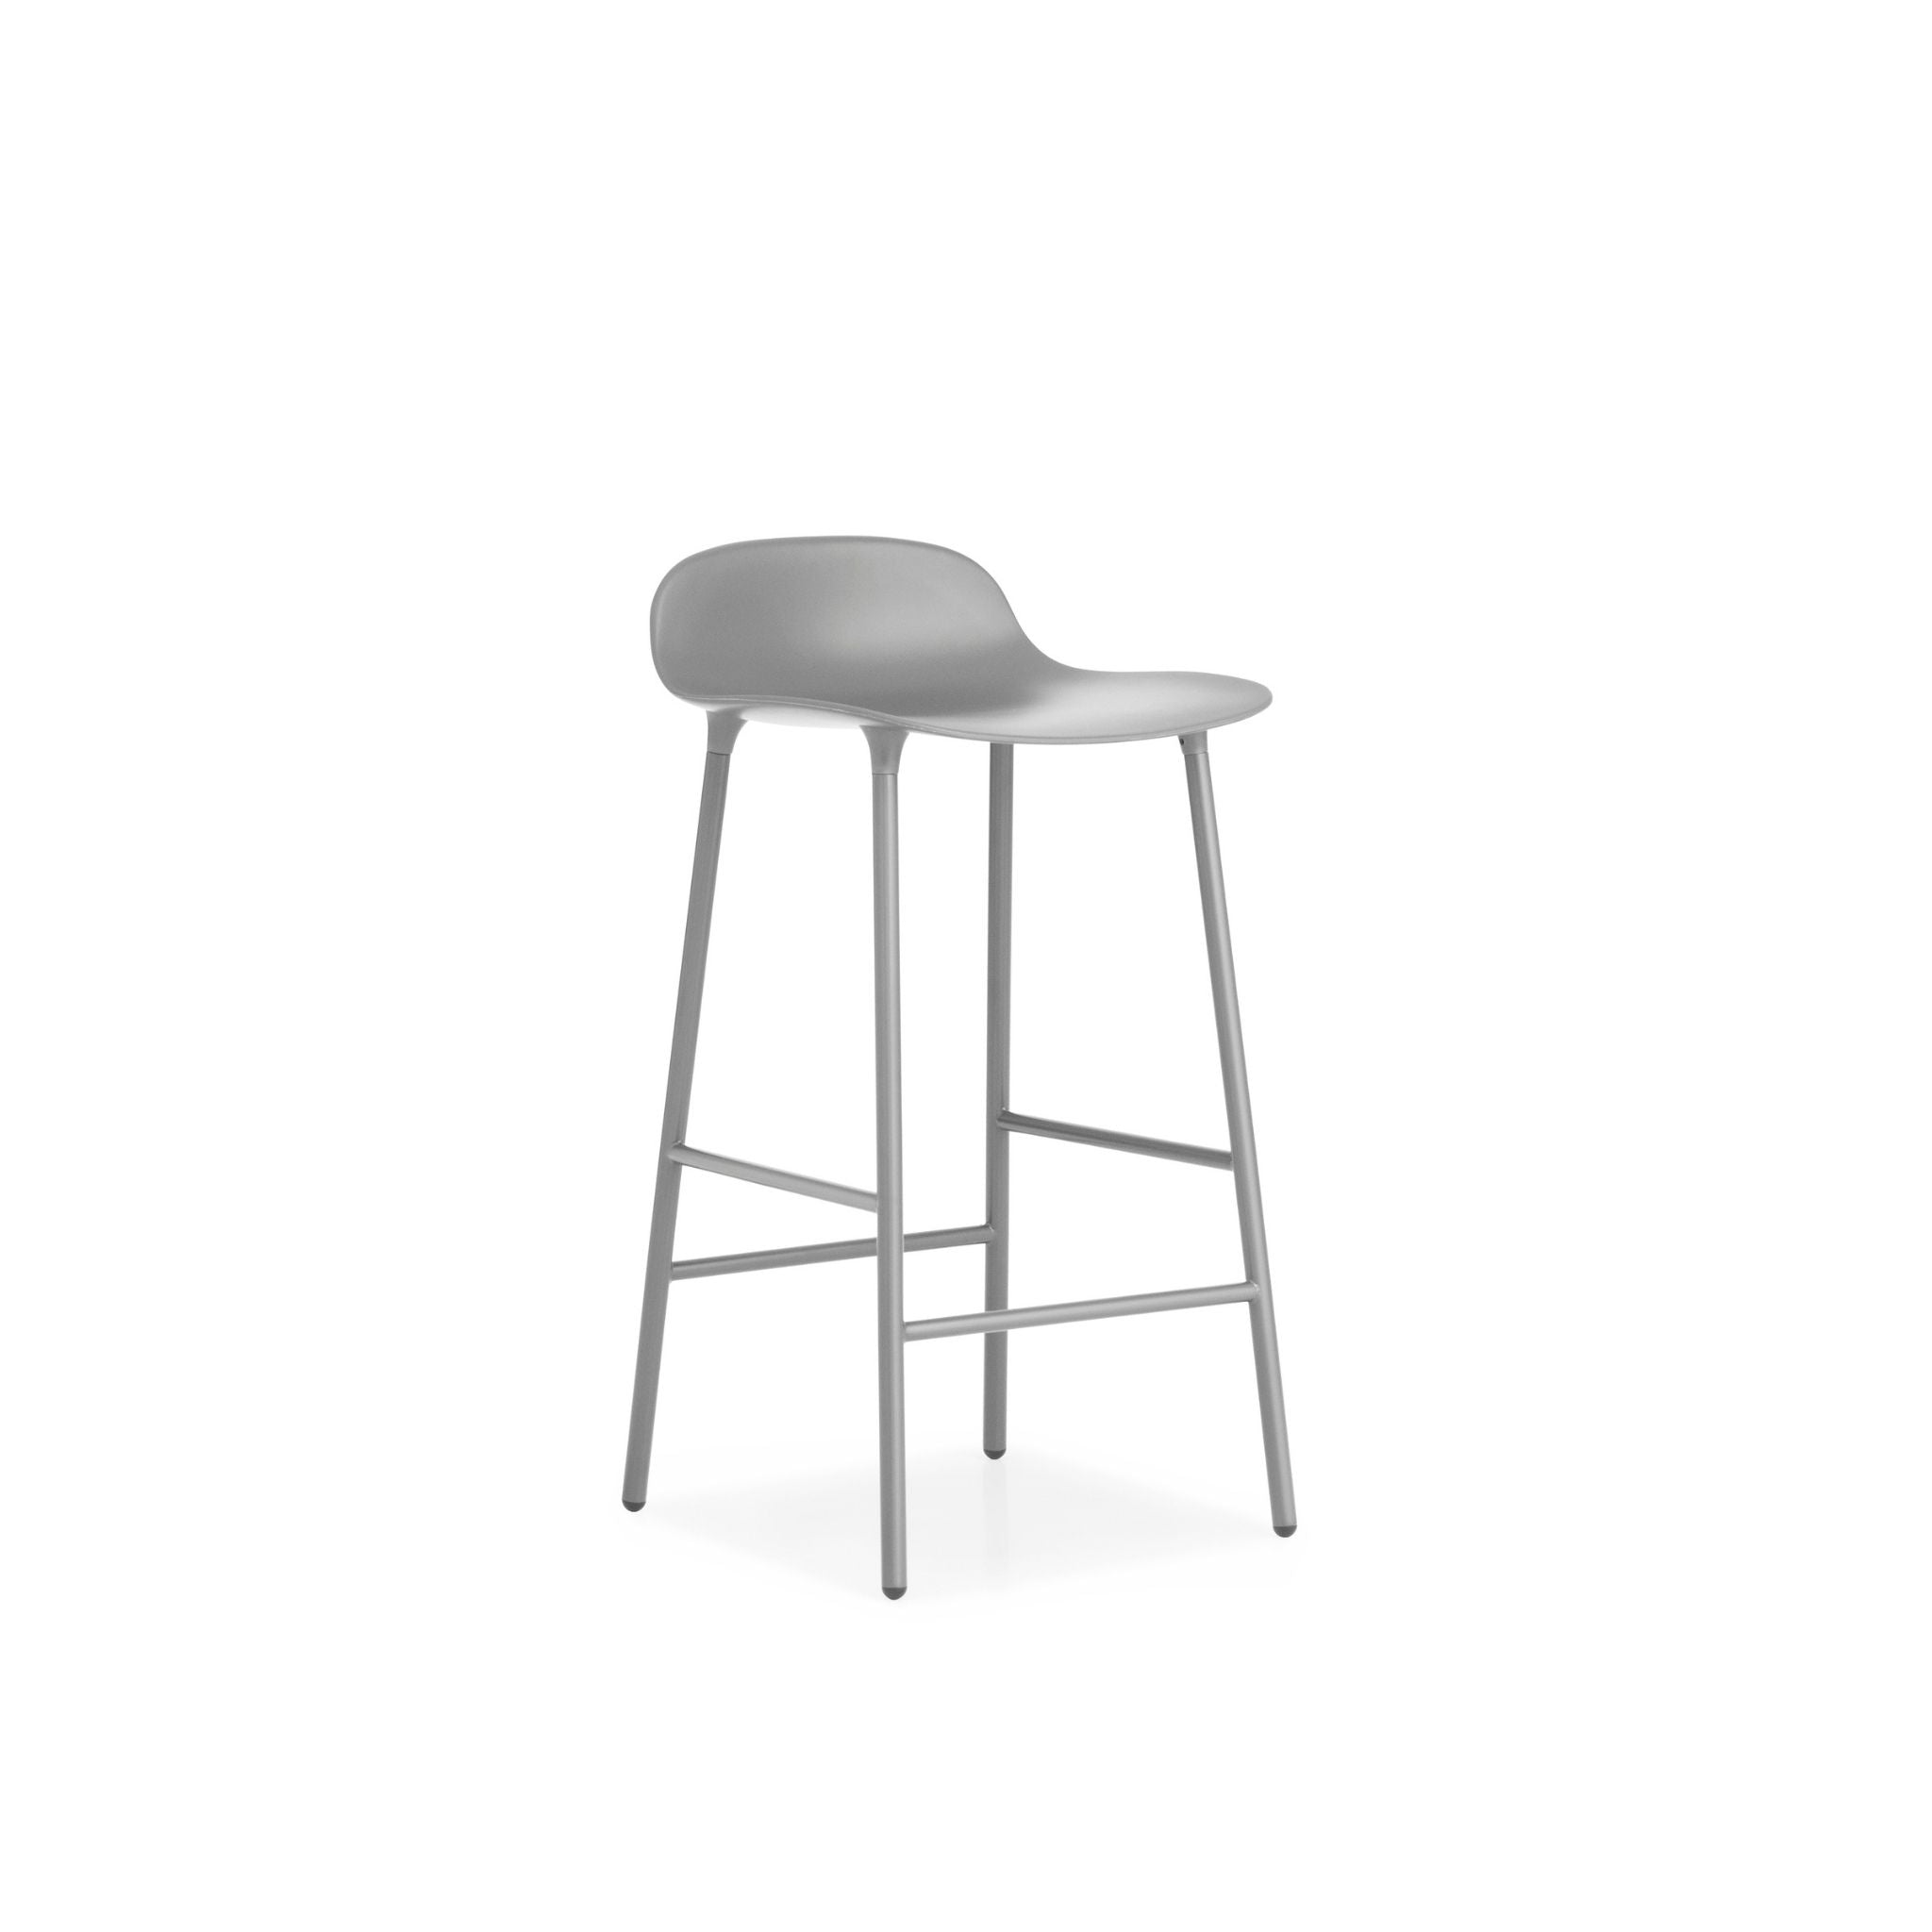 Form Stool Steel